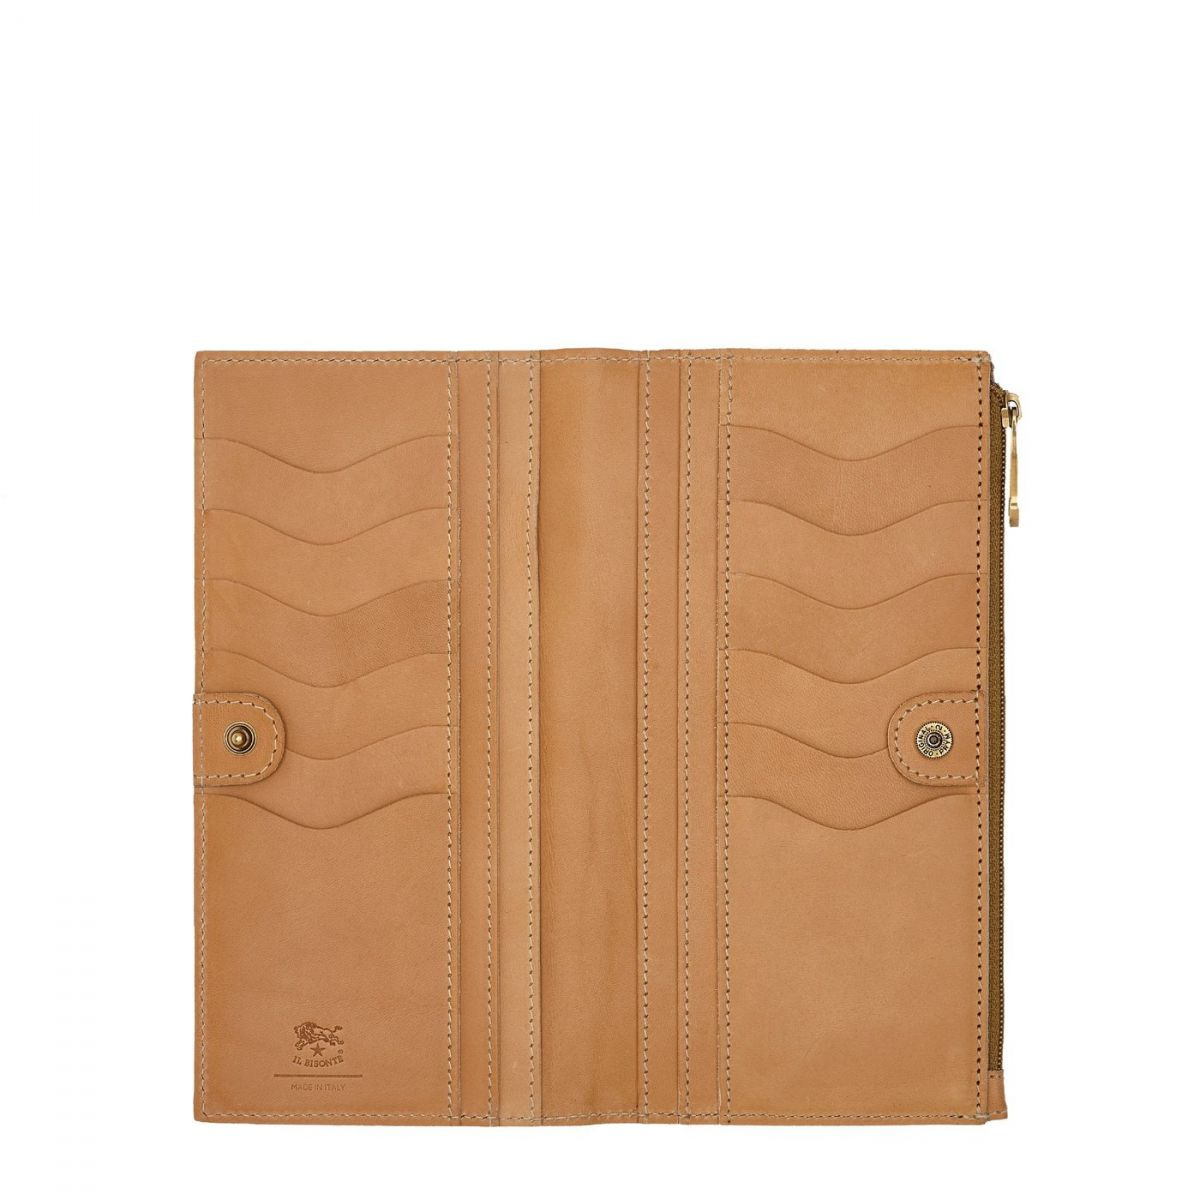 Women's Continental Wallet Giulia in Cowhide Leather SCW068 color Natural | Details